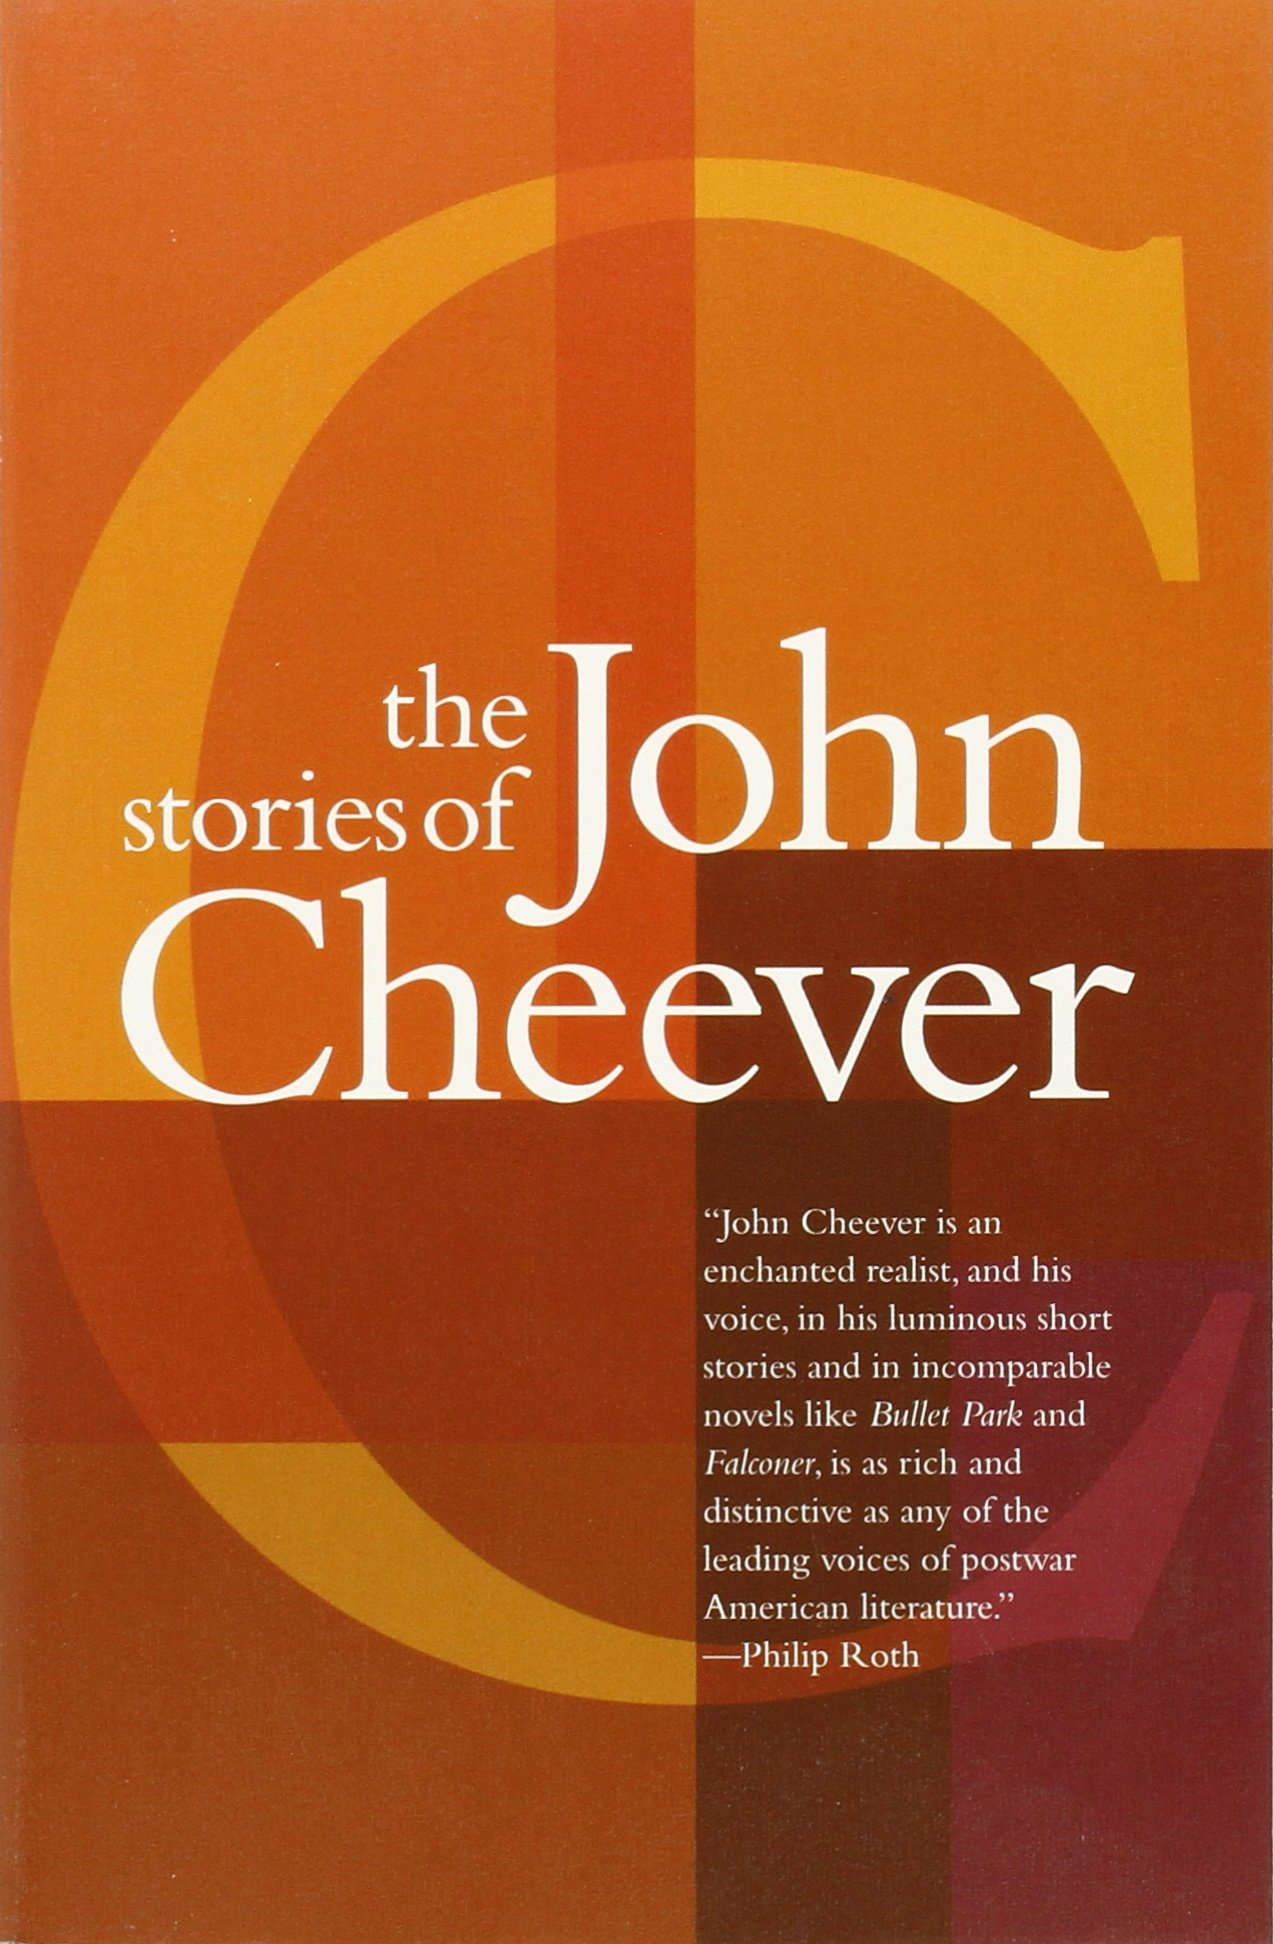 The Stories of John Cheever ISBN-13 9780375724428